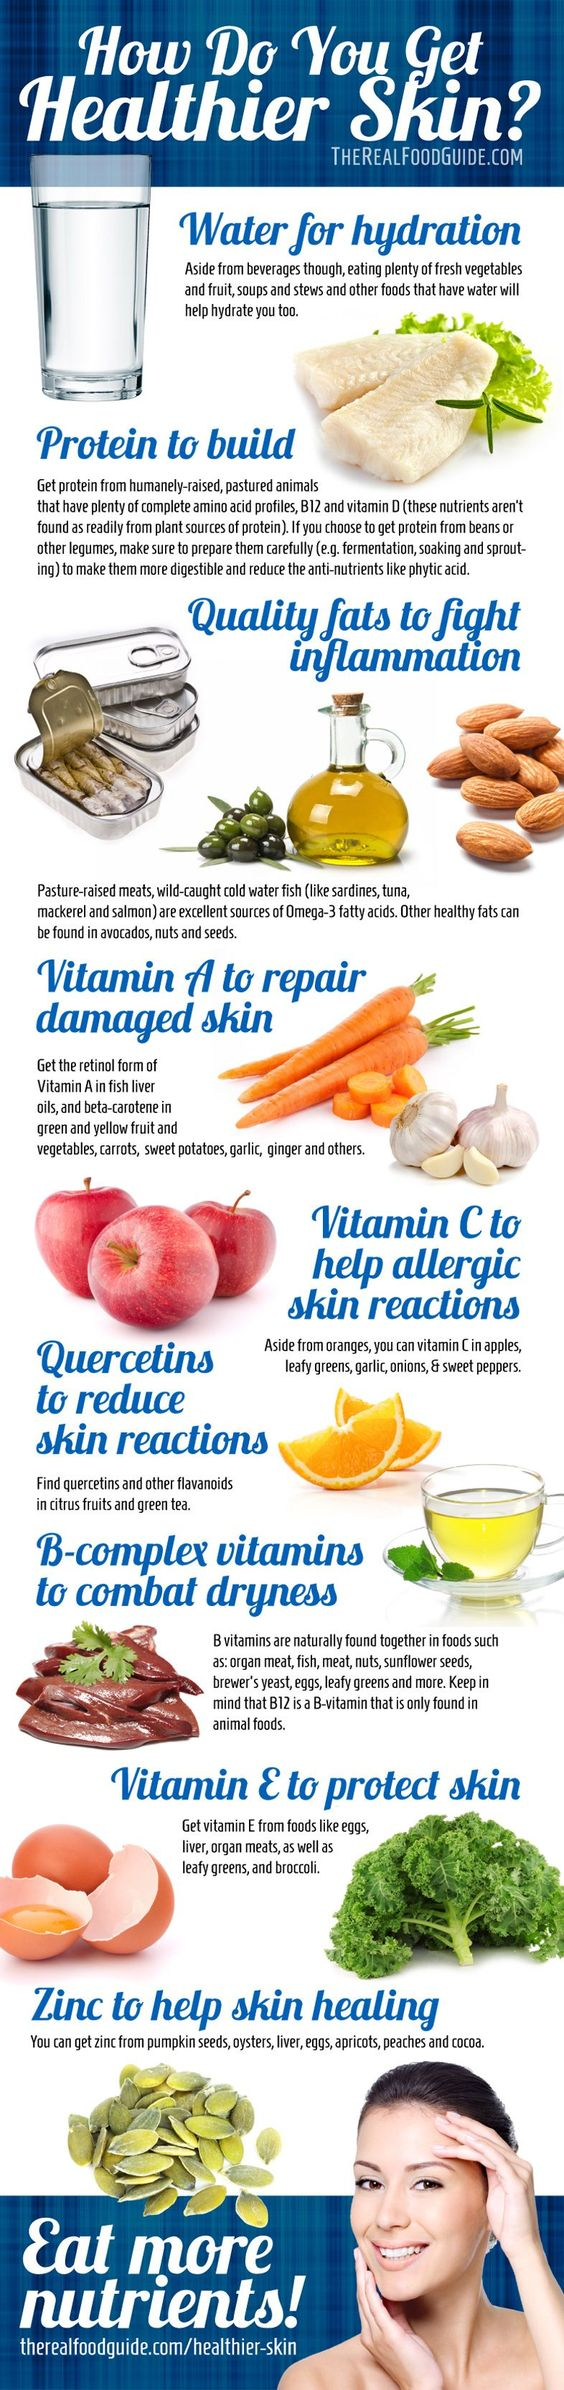 how do you get healthier skin